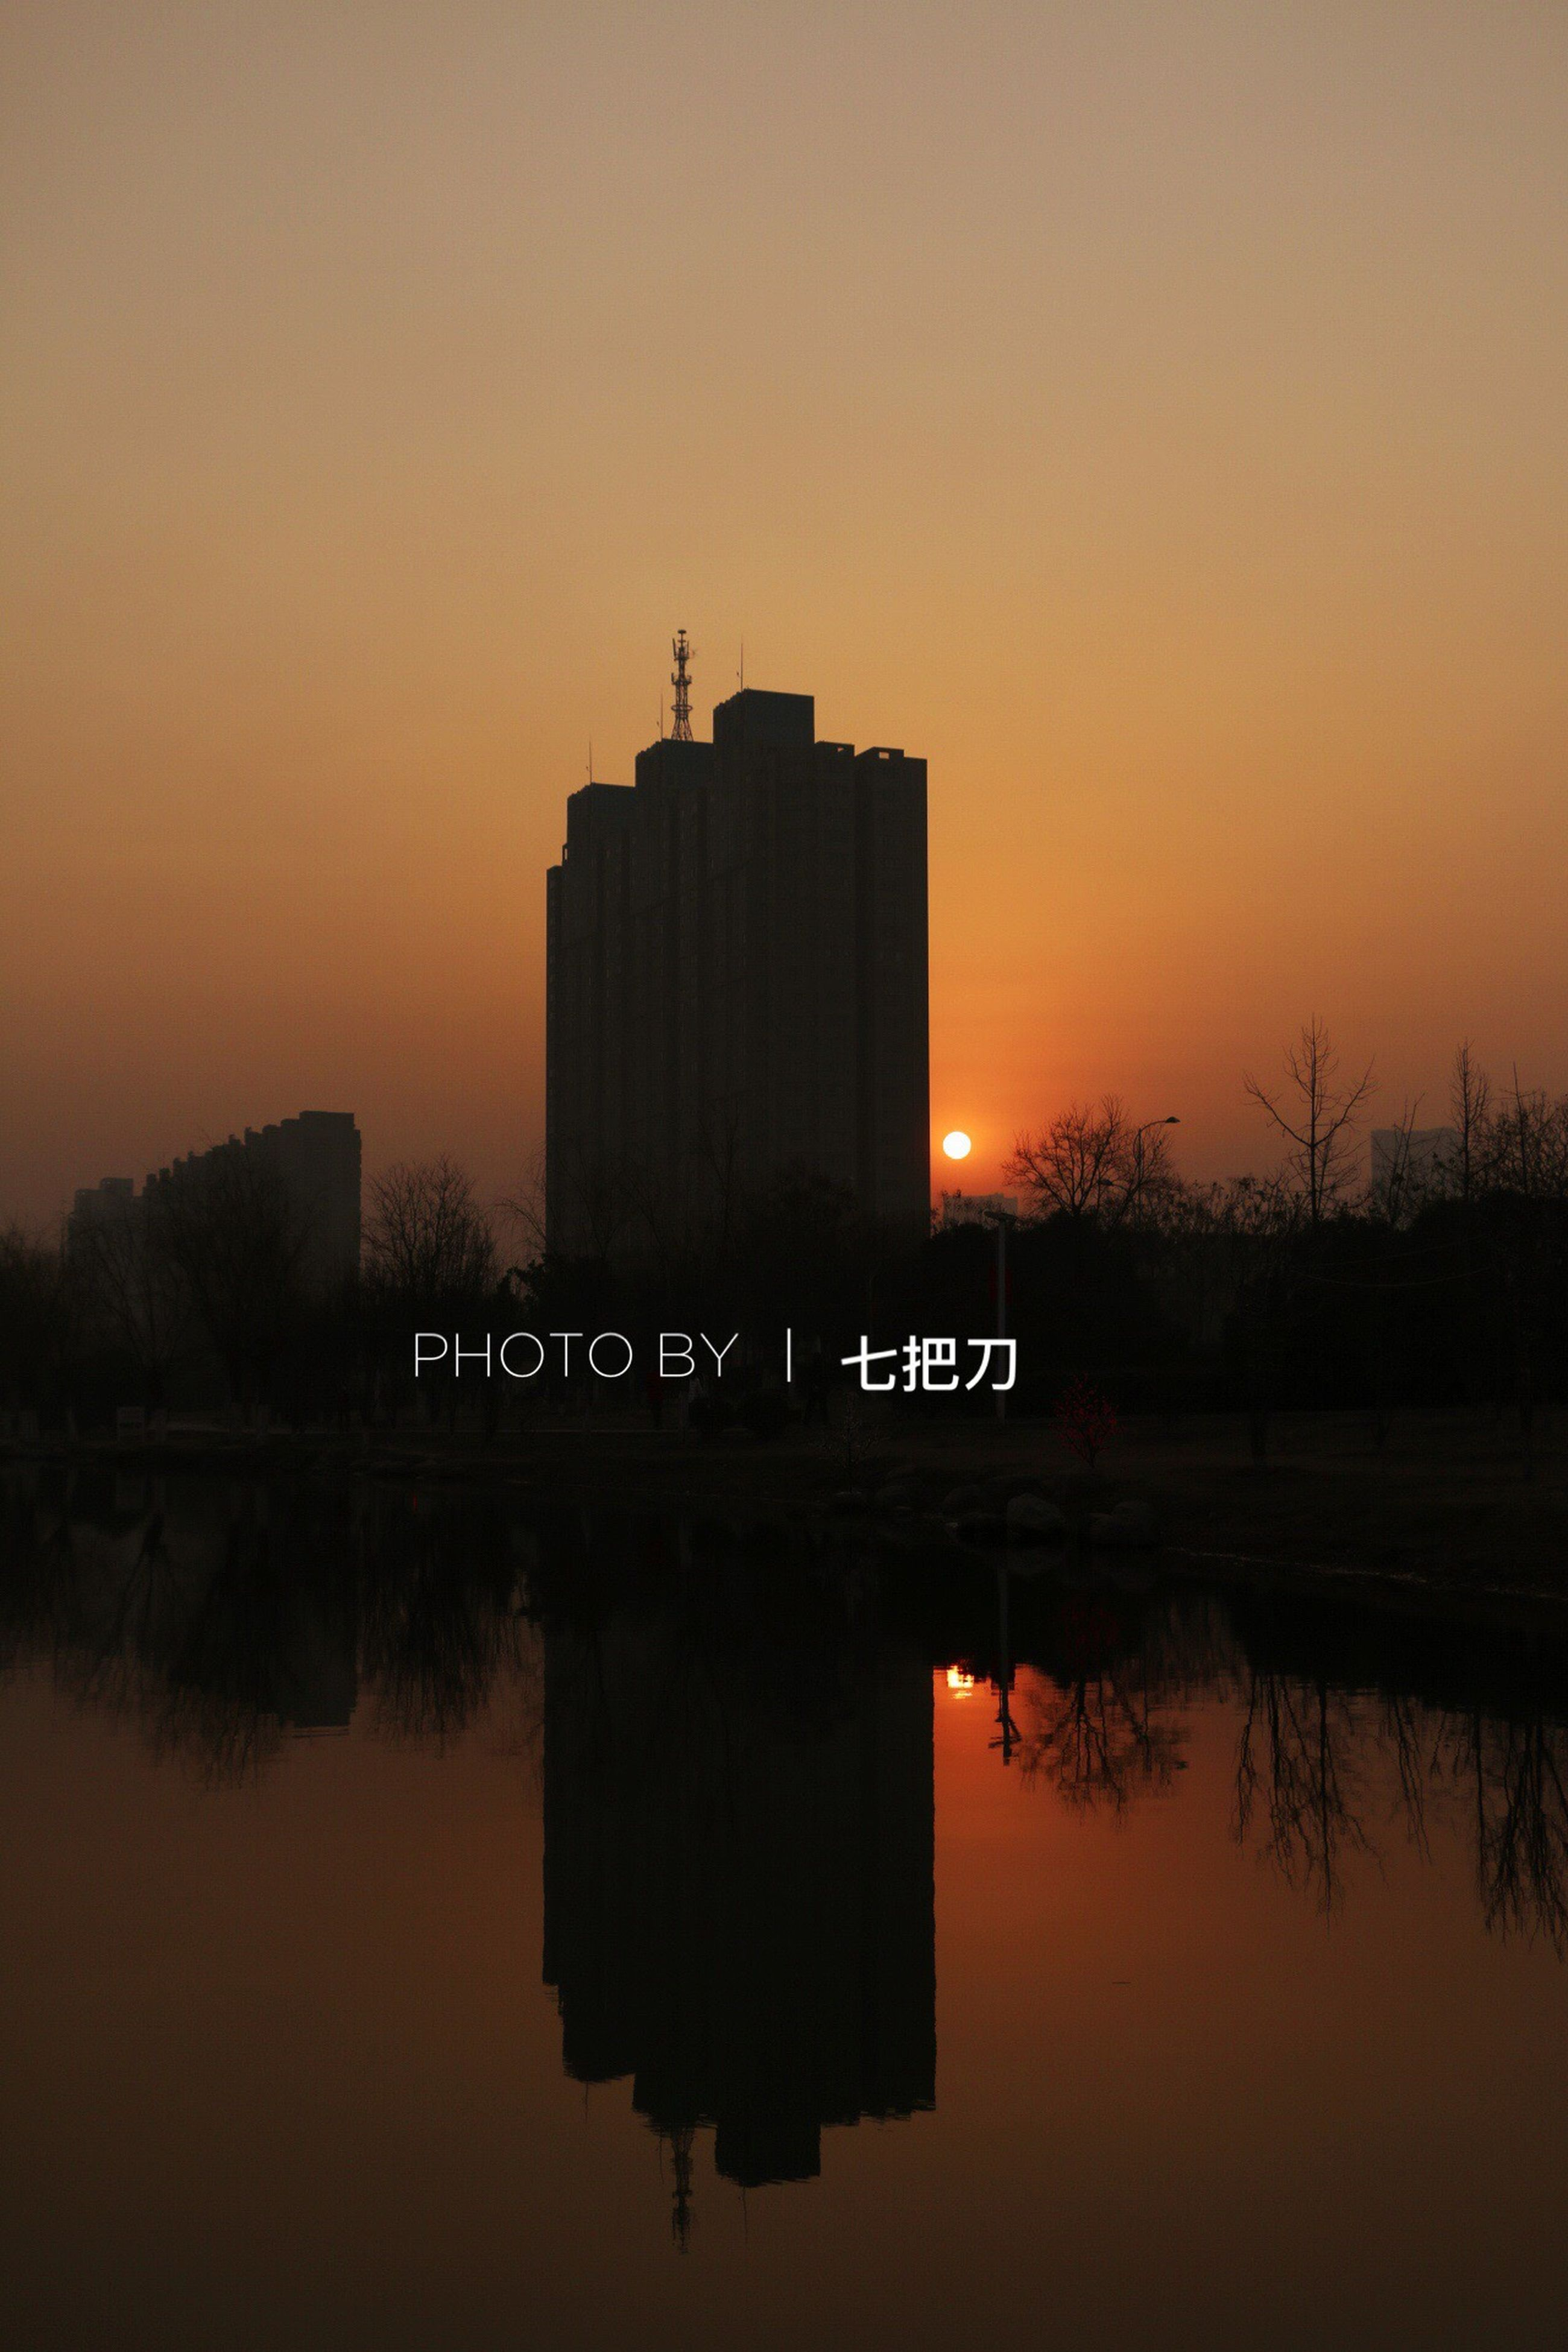 reflection, sunset, city, built structure, sky, water, architecture, fog, no people, outdoors, urban skyline, nature, day